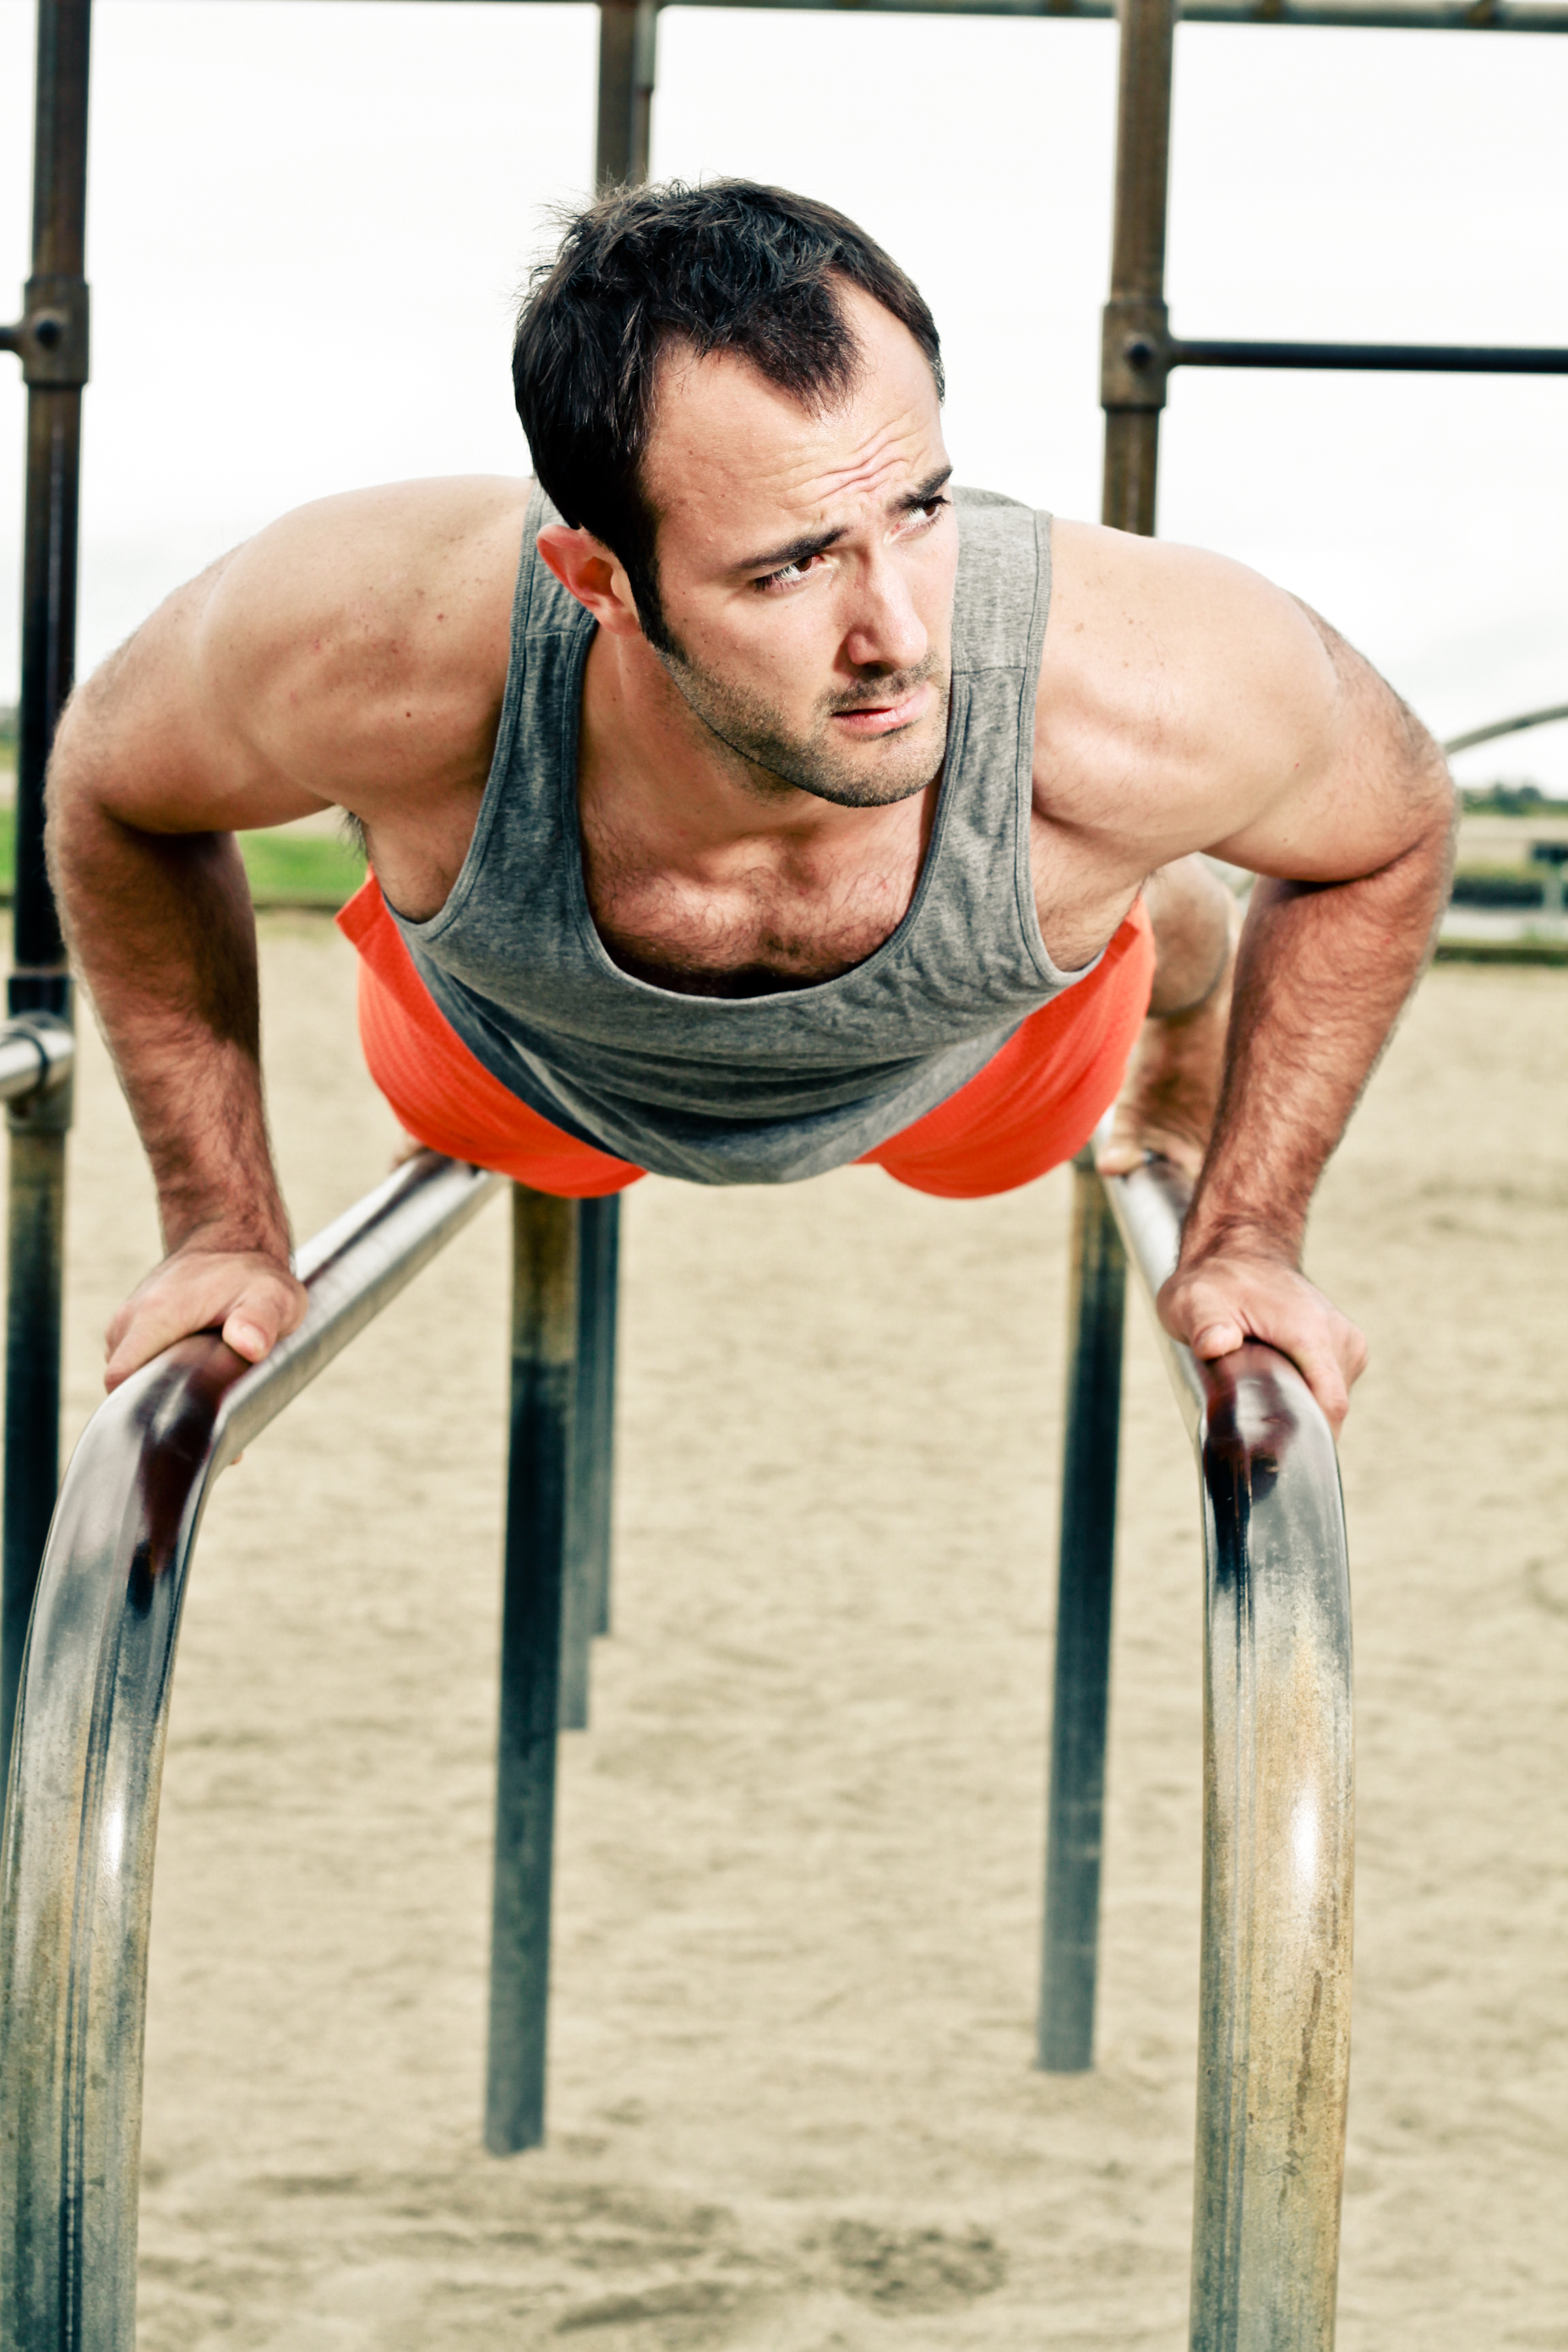 San Diego personal trainer, Brian Tabor, performs a push up outside on parallel bars.